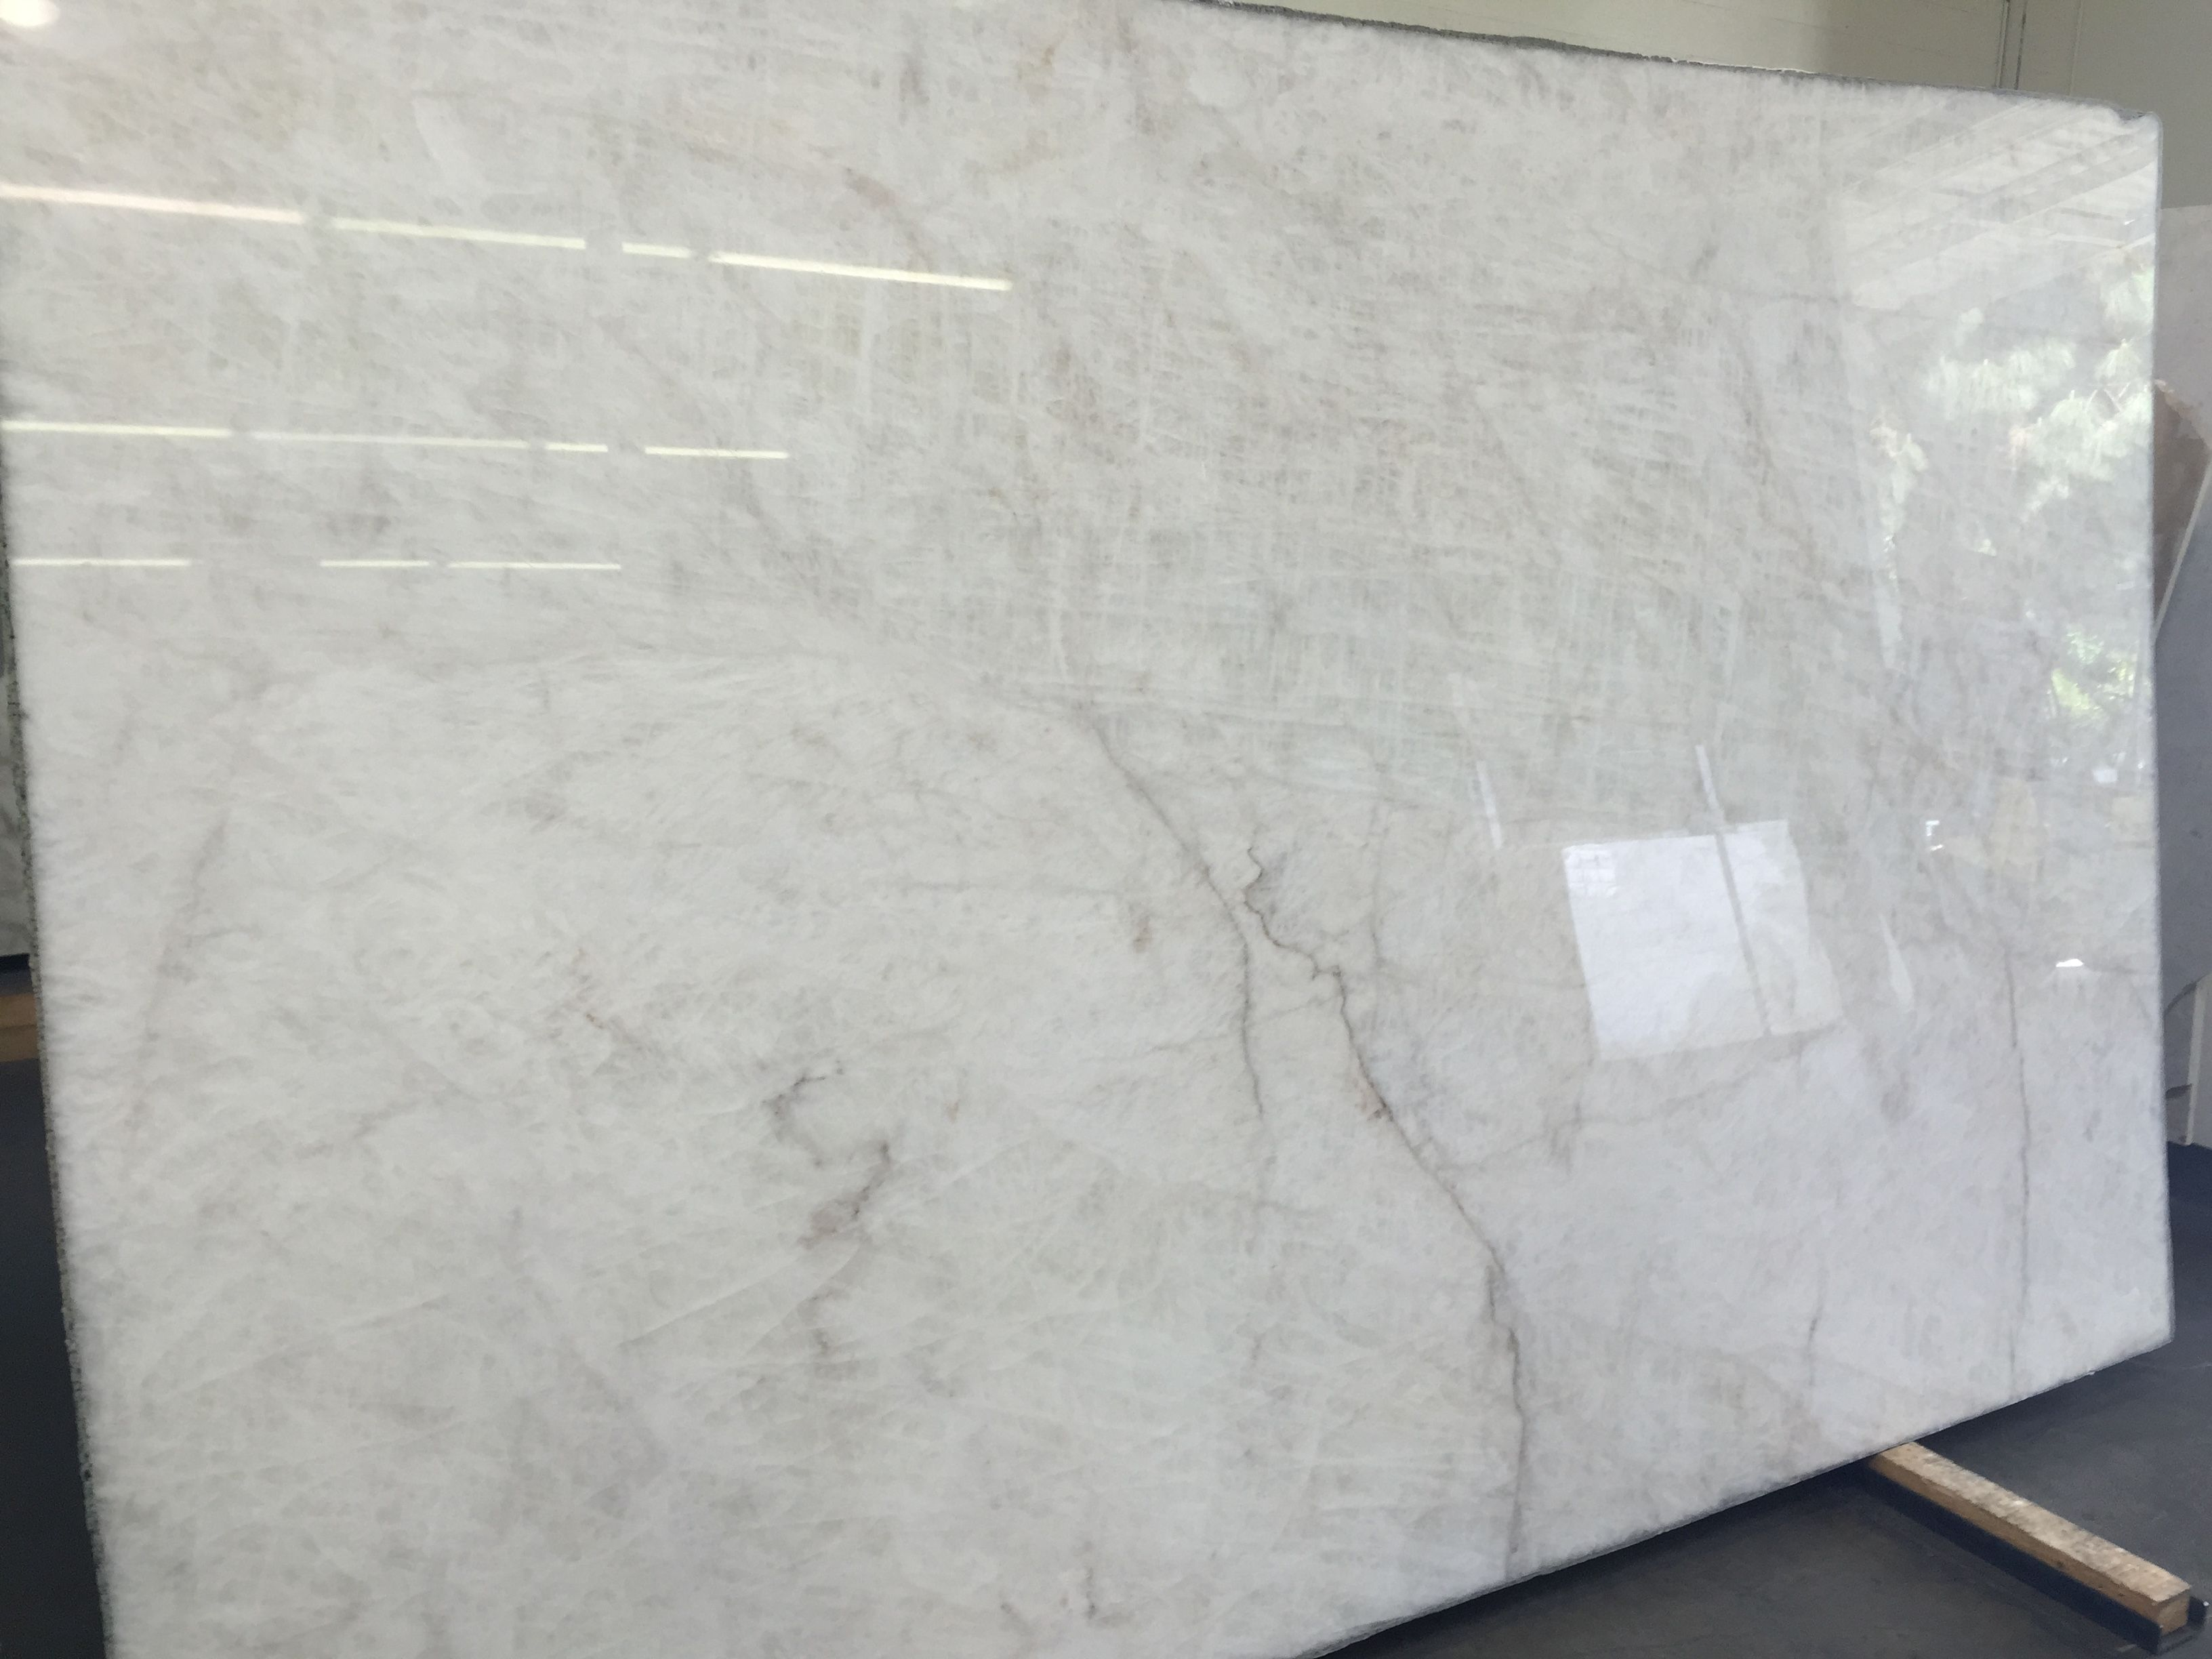 White granite that looks like calcutta marble - I Just Wanted You To Know Why I Have Such A Passion For Countertops Silly Quartzite Countertopswhite Granite Countertopsmarble Countertops